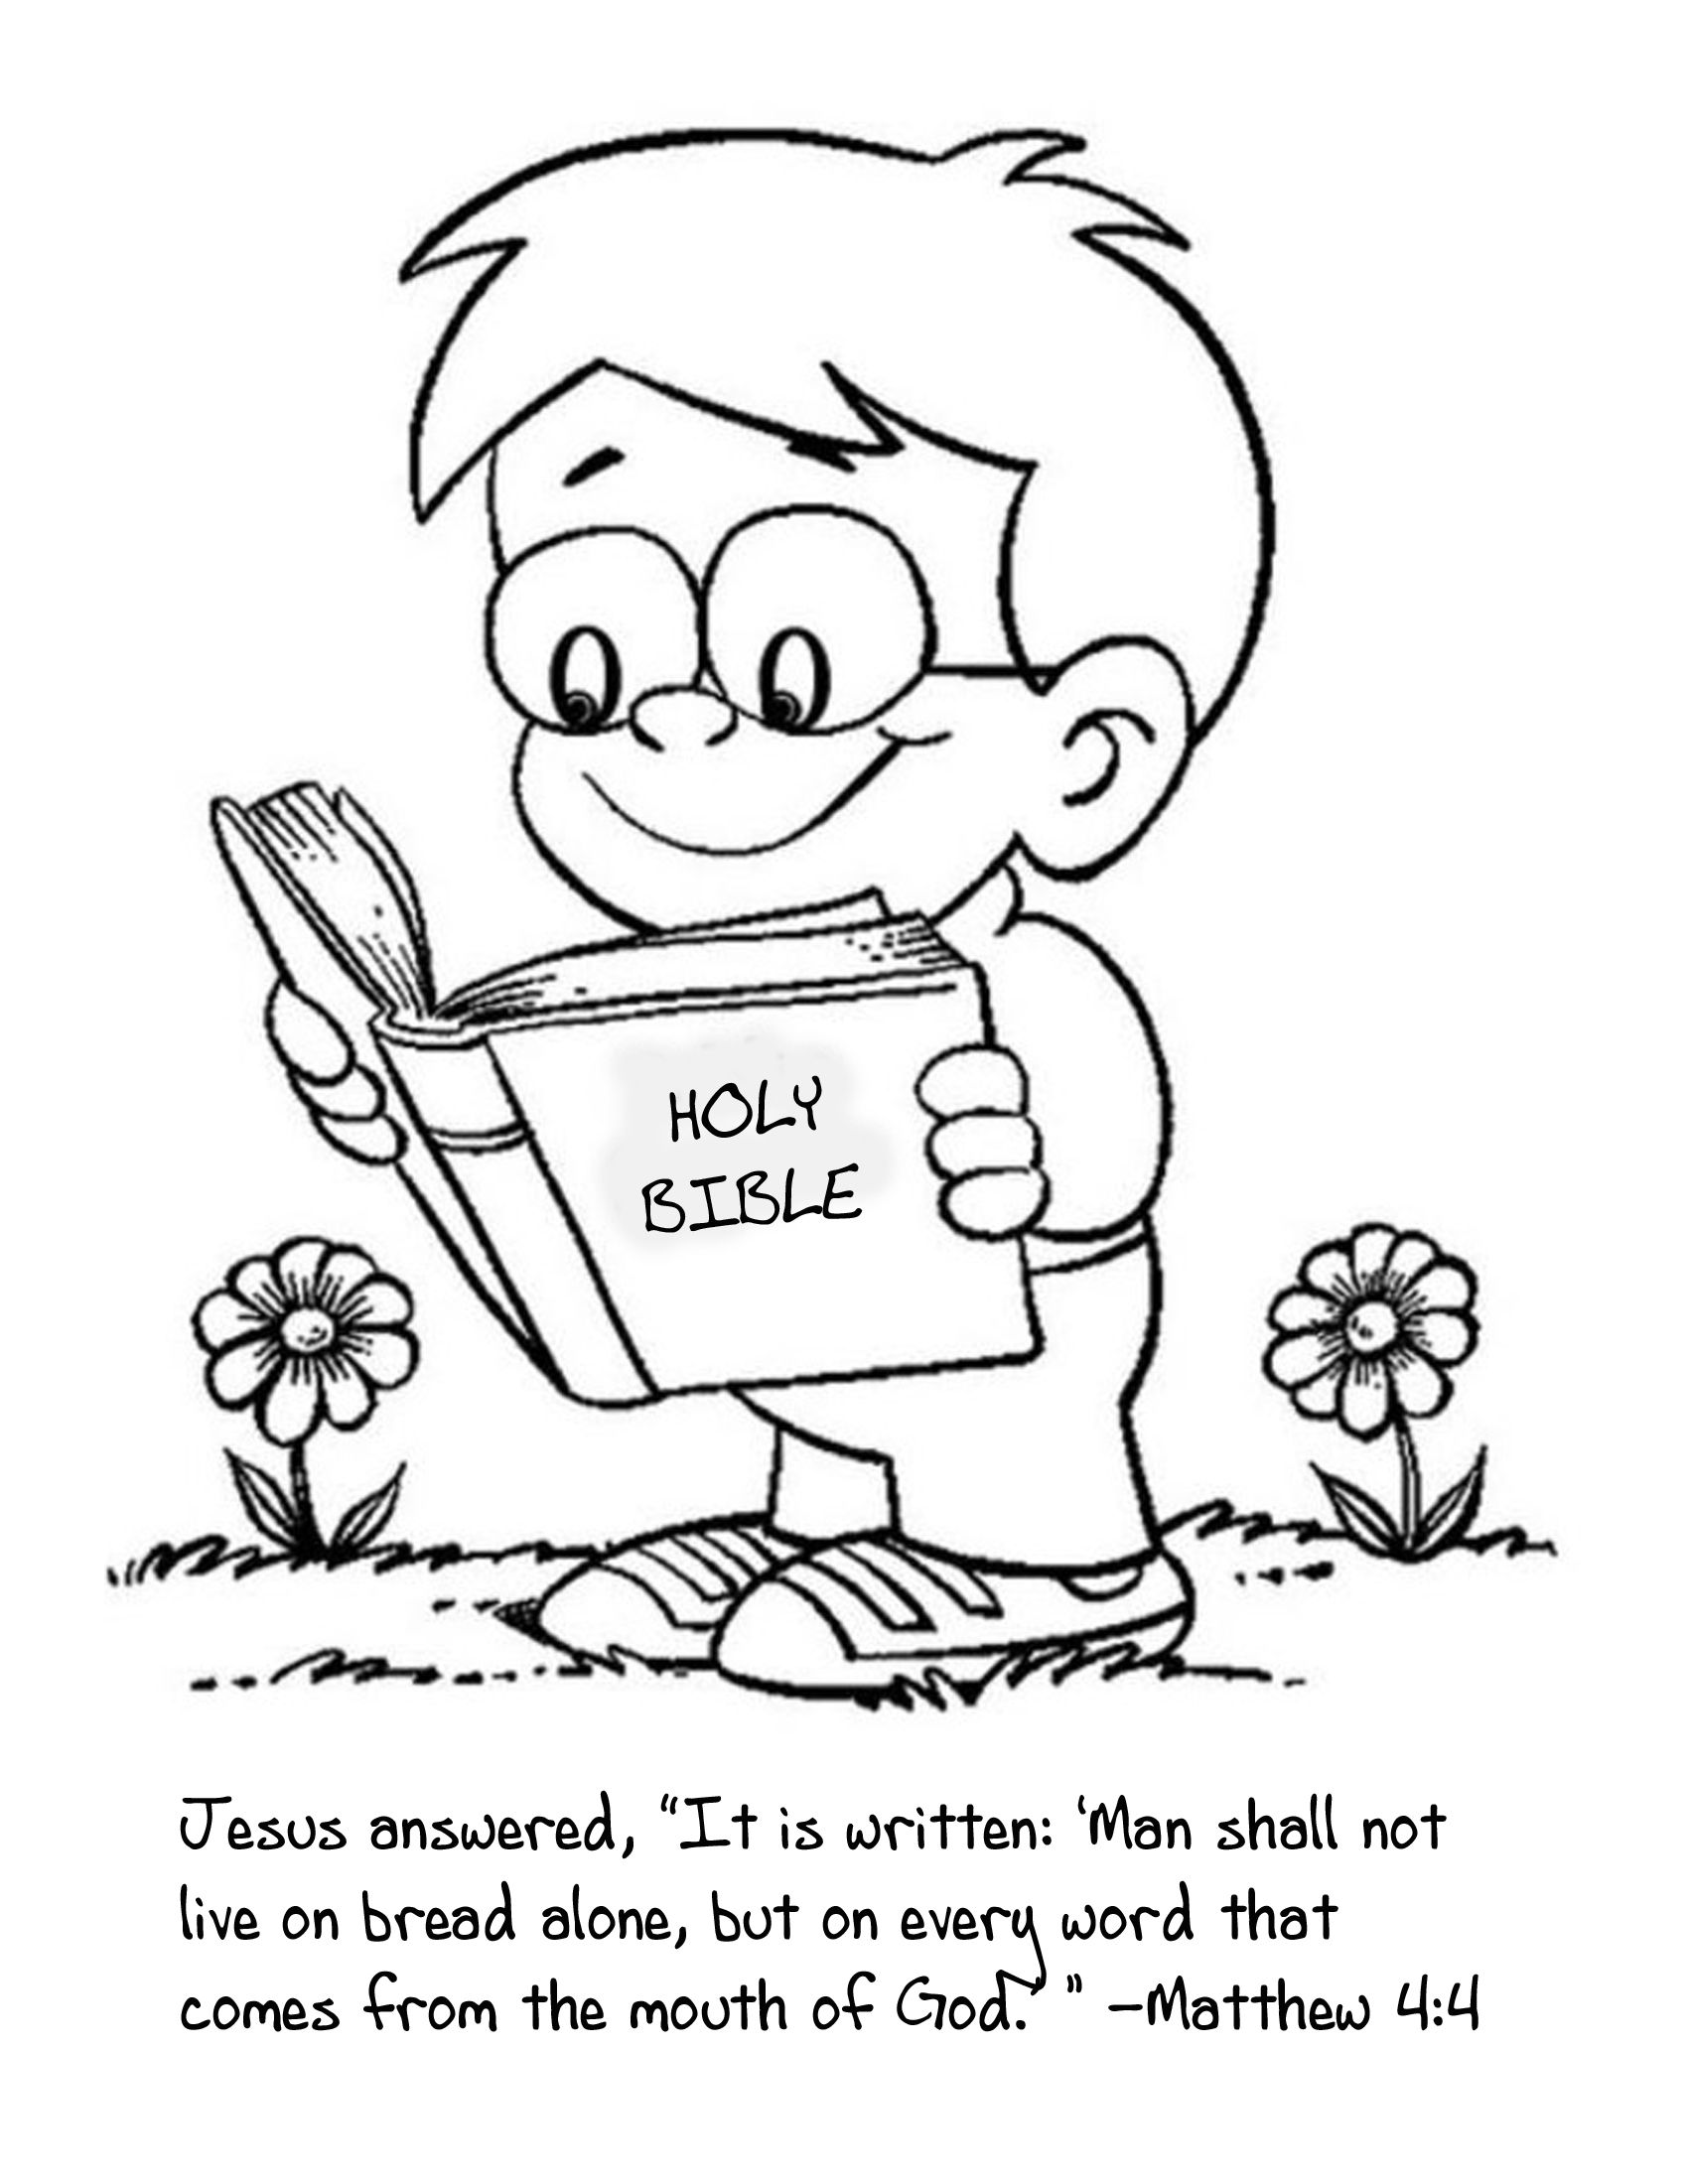 Cute Coloring Page For The Kids To Color As We Talk About Reading